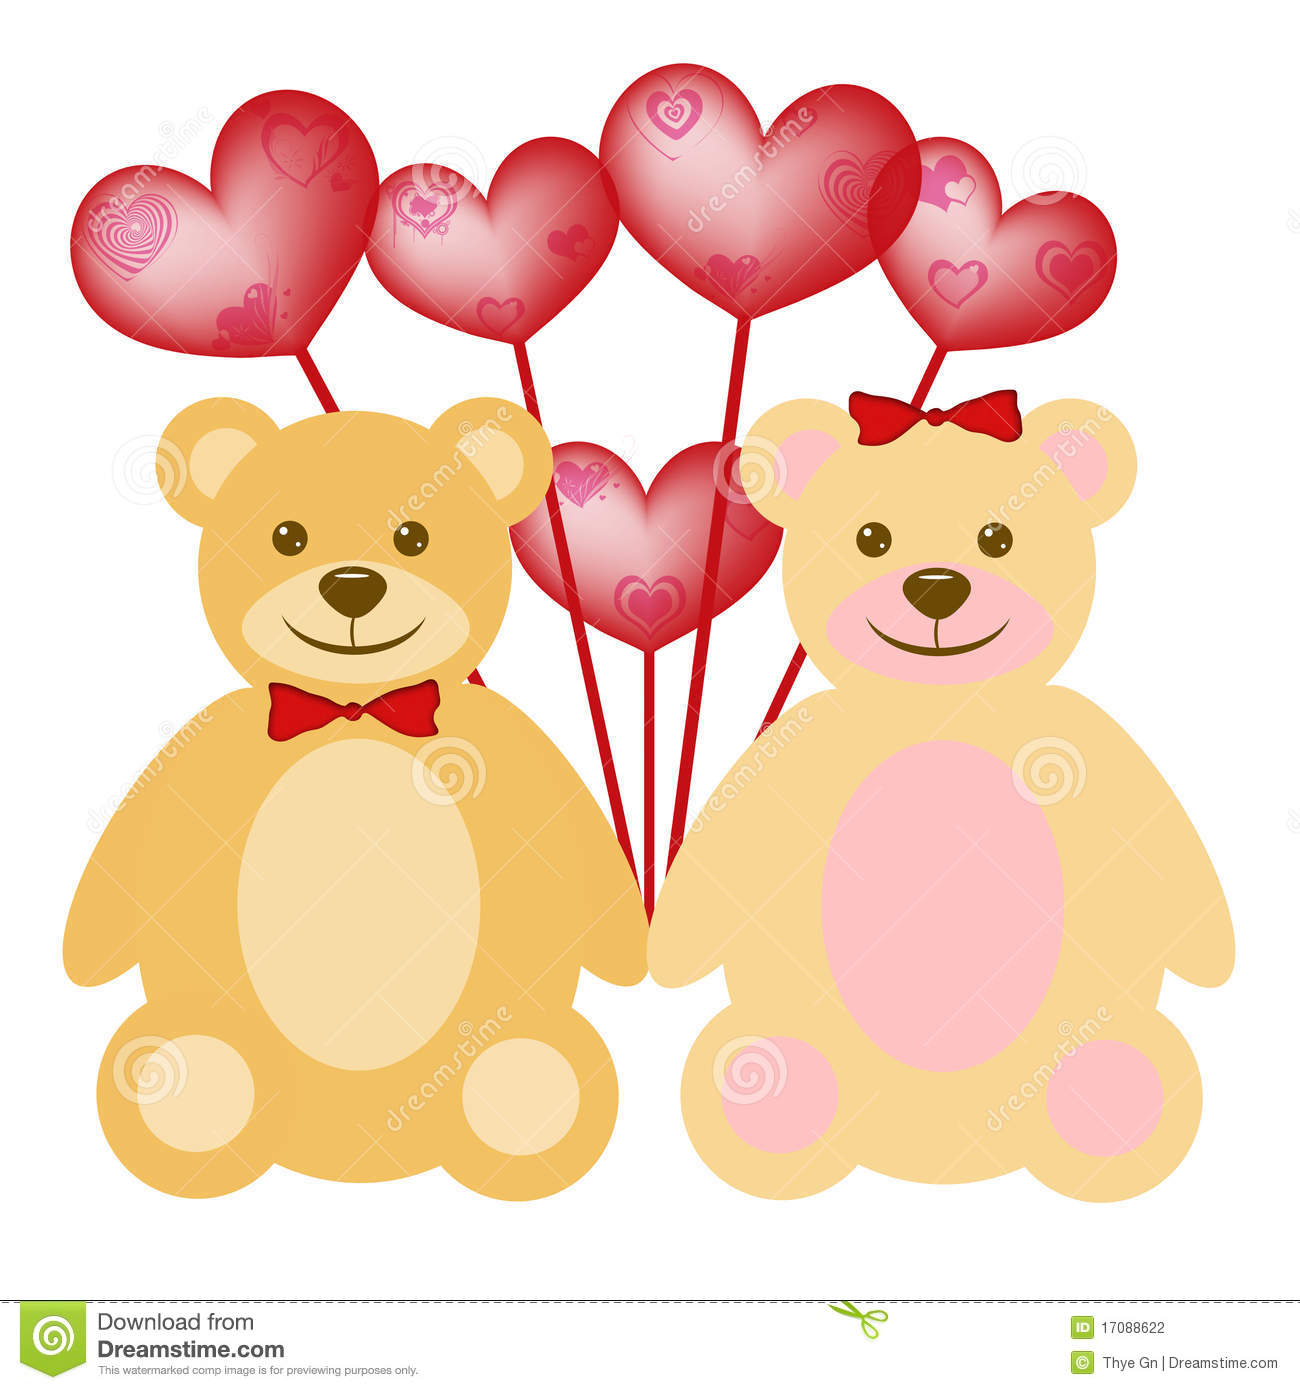 Cute Teddy Bears Cards, Free Cute Teddy Bears eCards